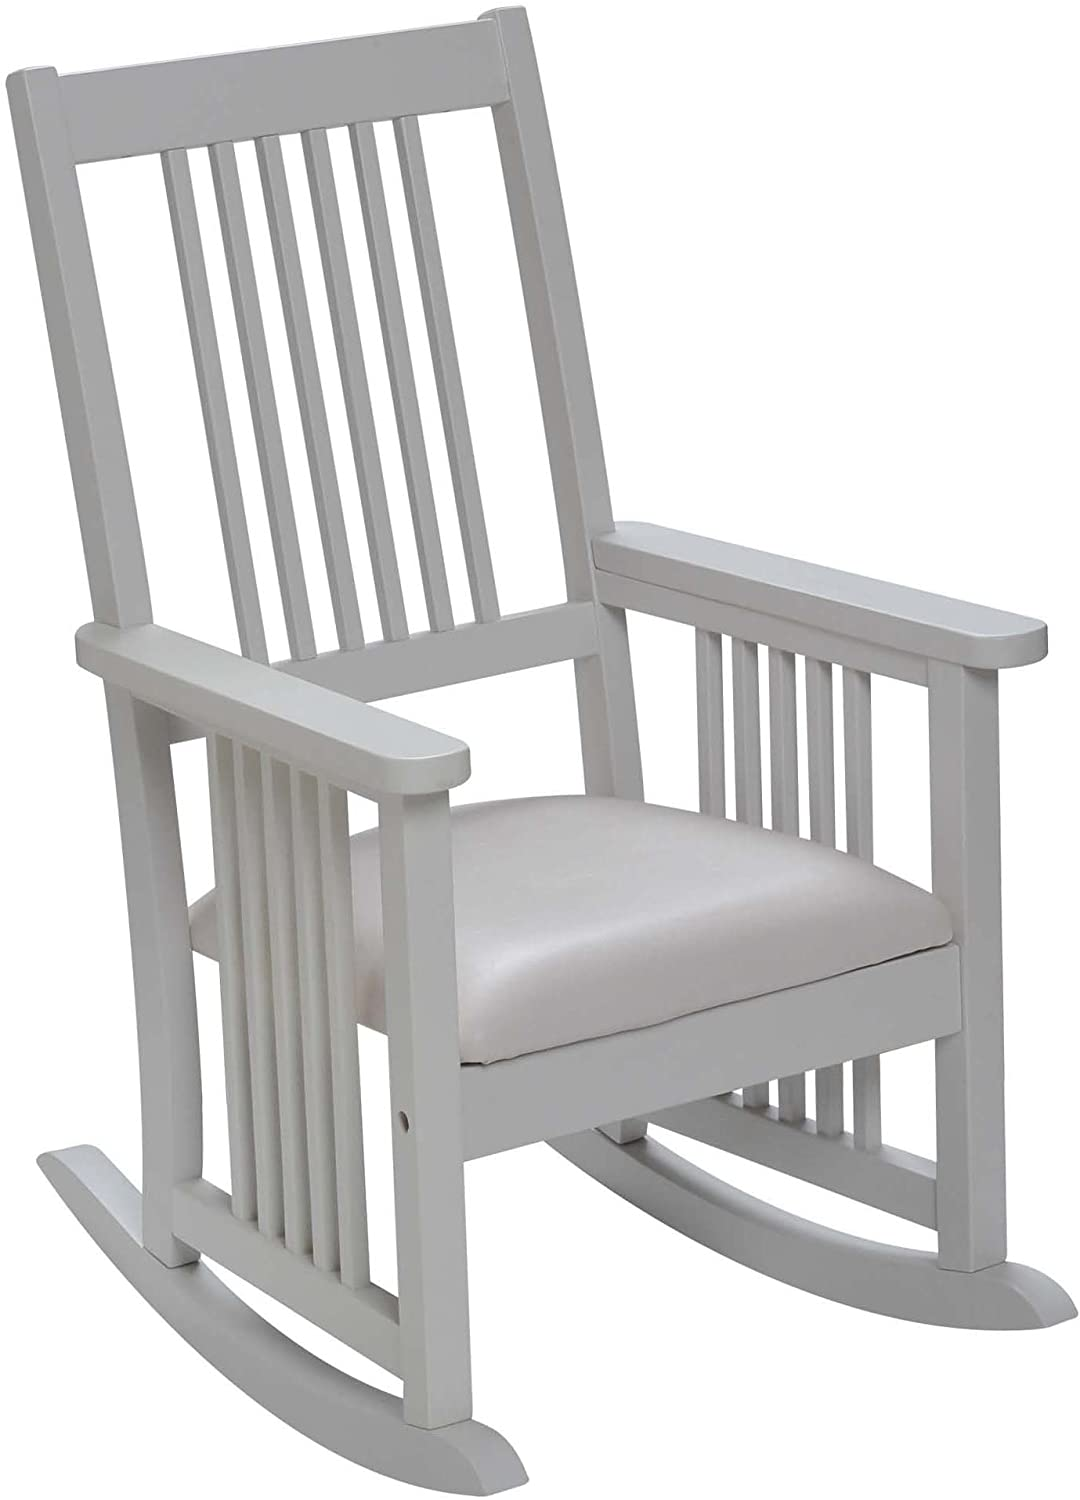 Giftmark Mission Style Kids Rocking Chair with Upholstered Seat, Style D, White